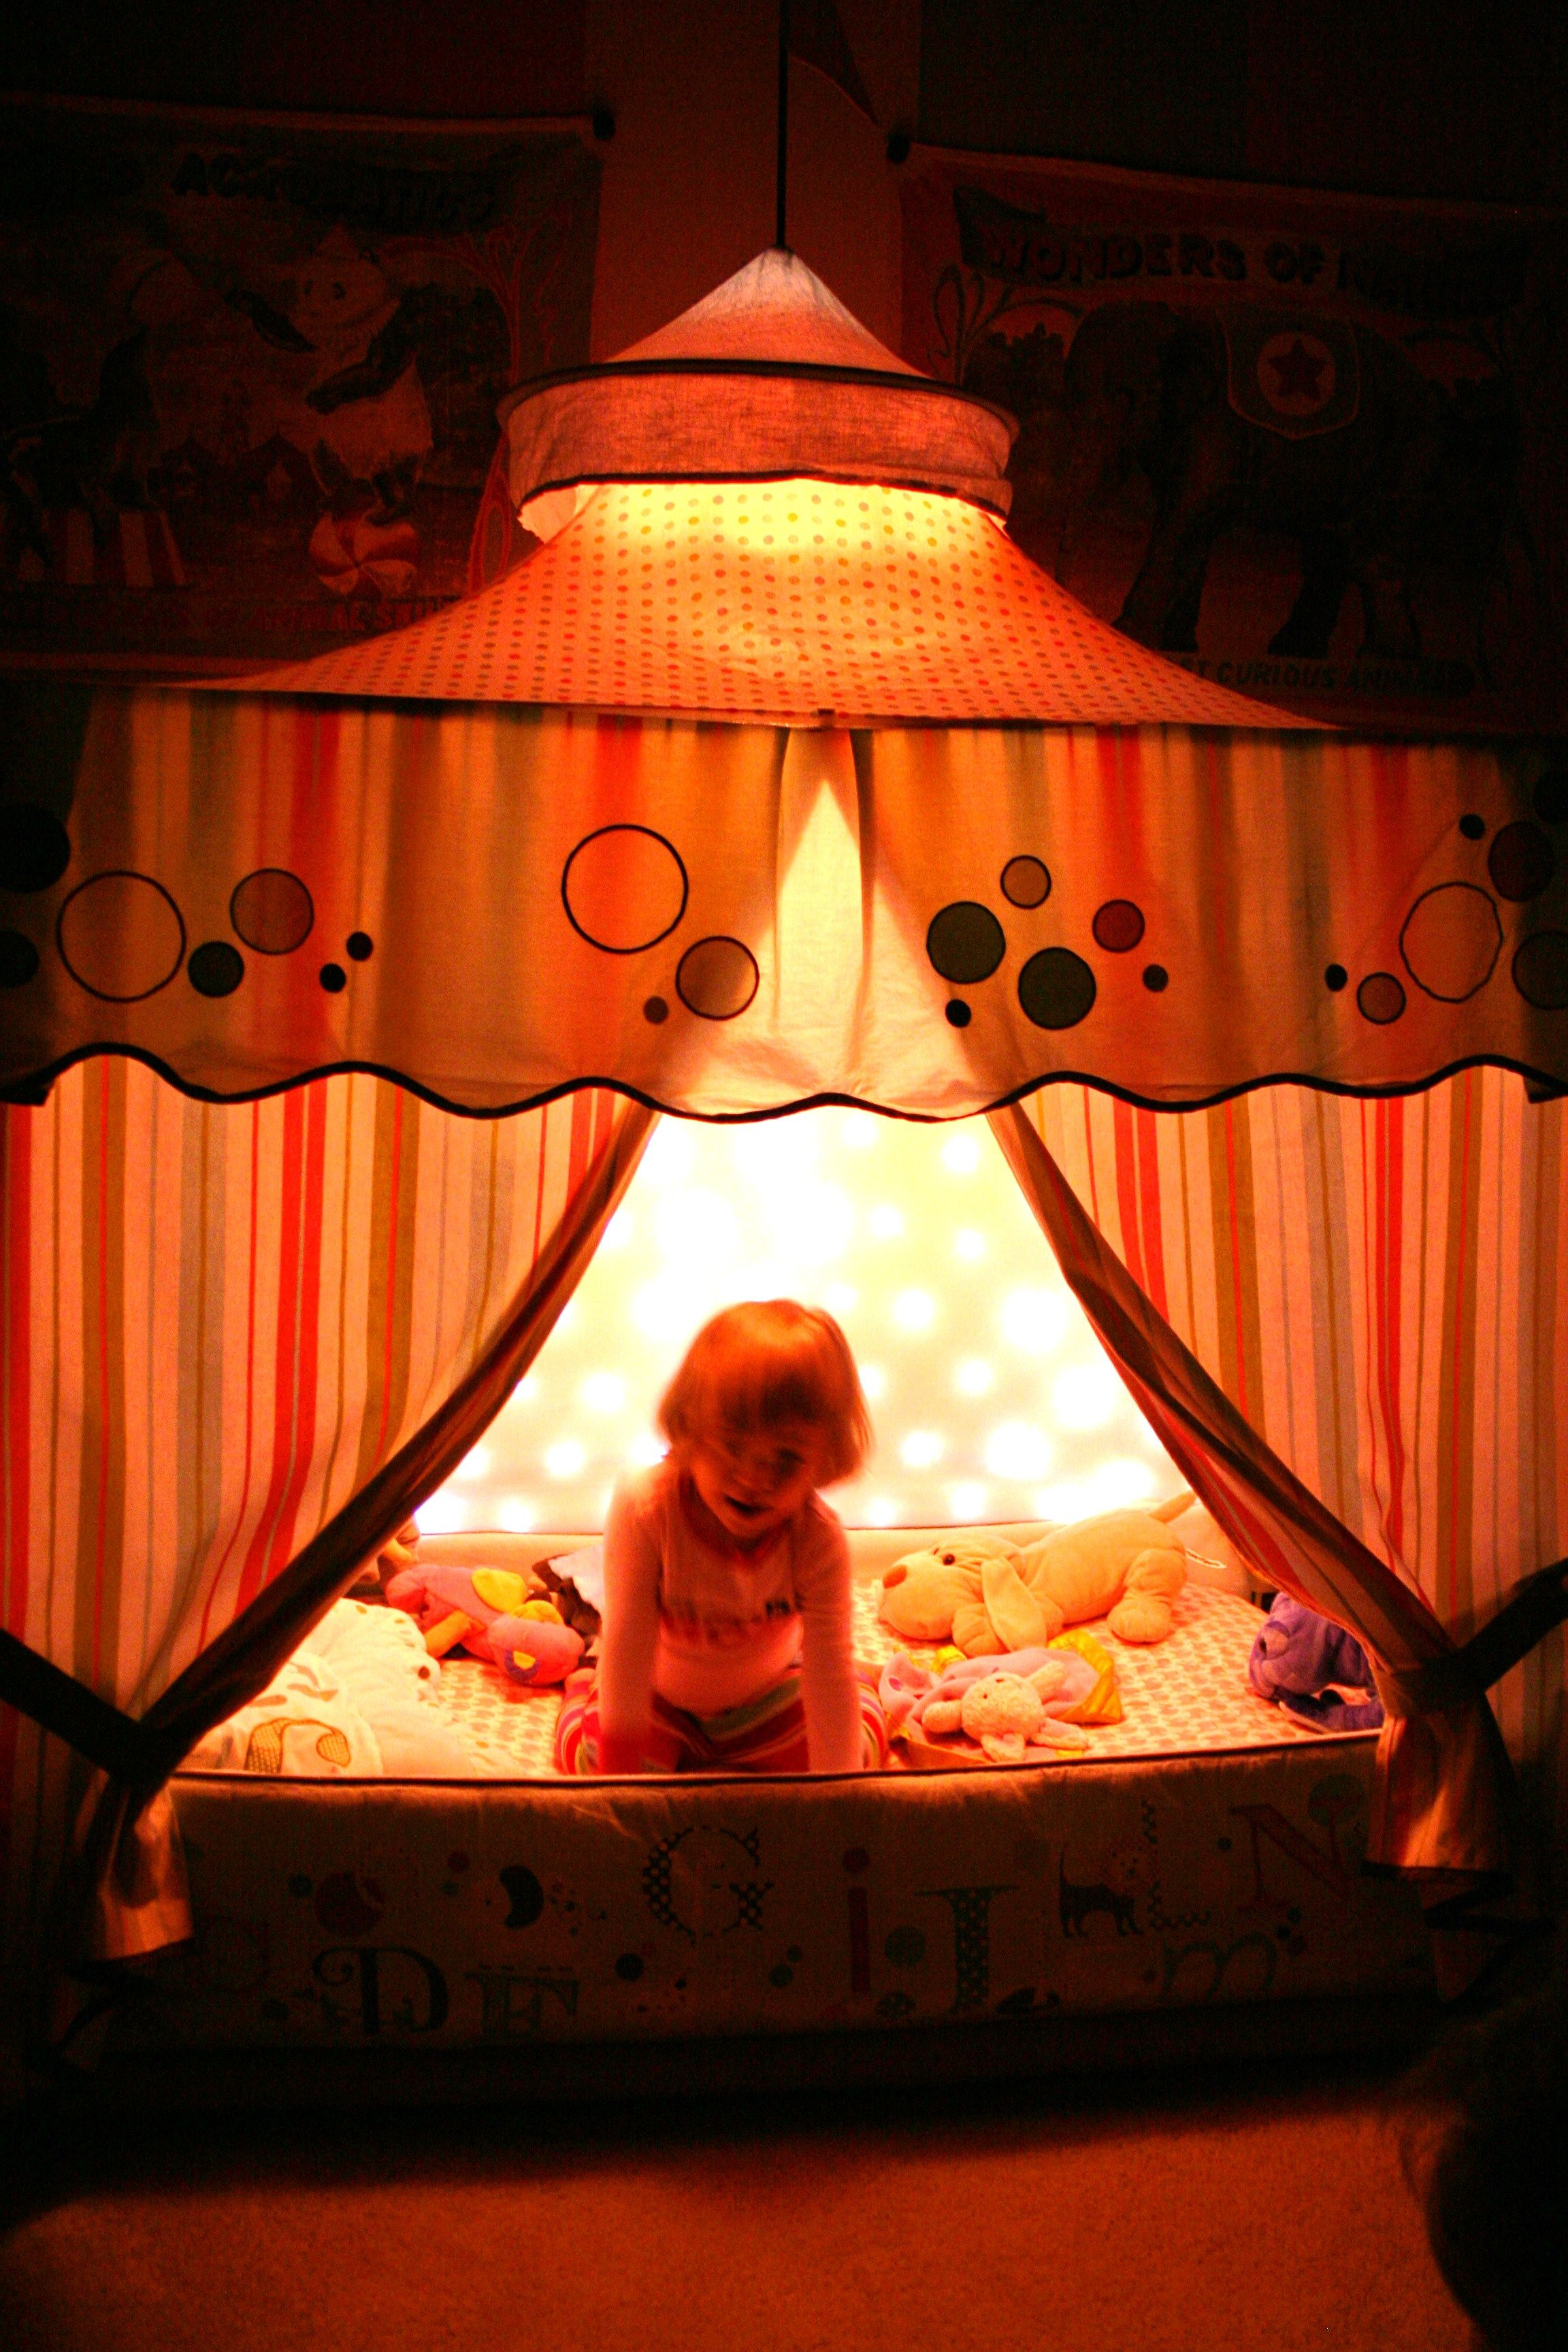 Circus tent bed canopy with light curtain inside. Little